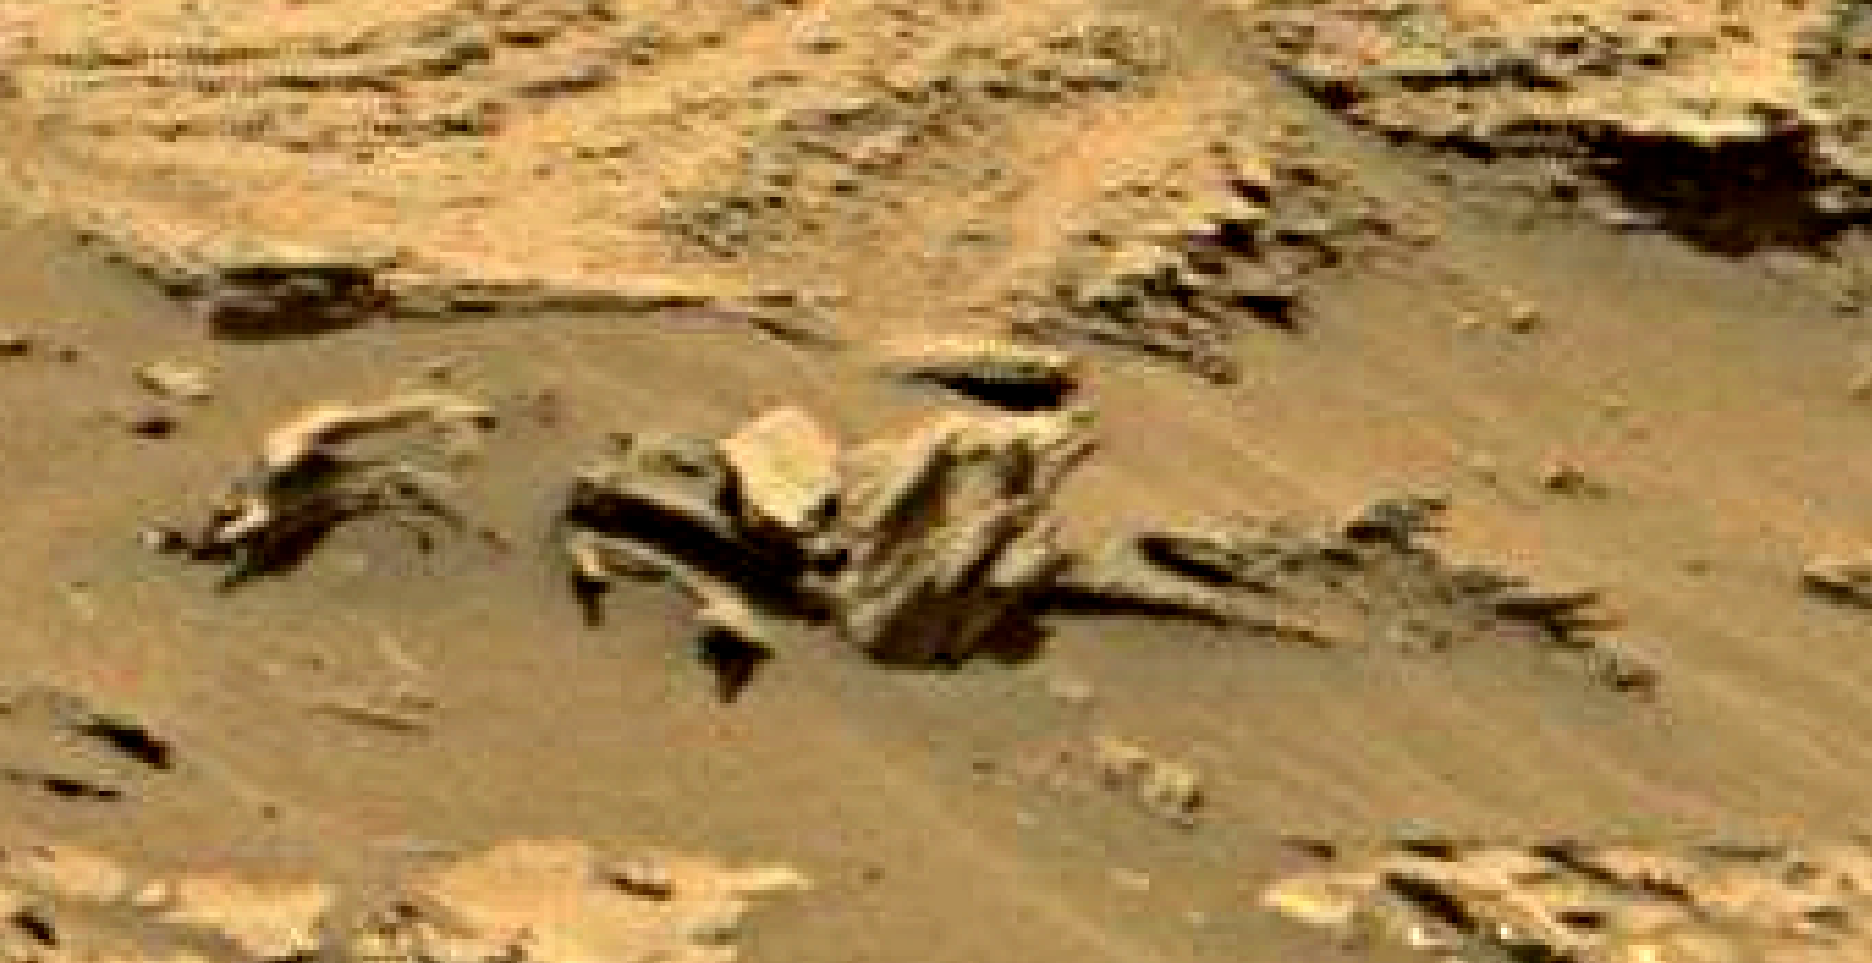 mars sol 1353 anomaly-artifacts 17 was life on mars